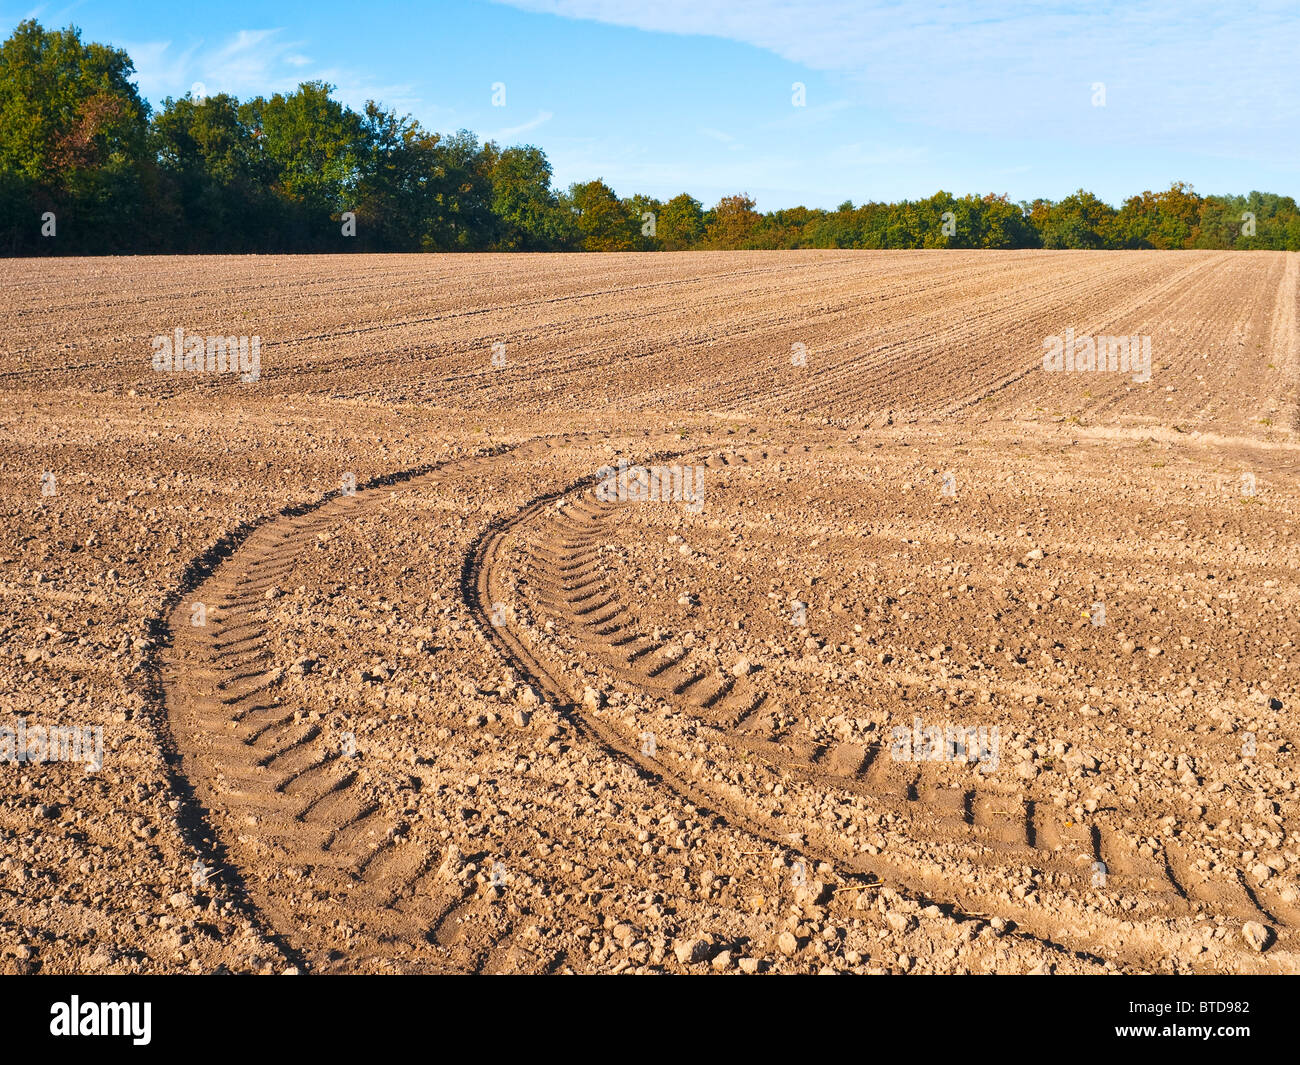 Tractor tyre tracks in farm field - France. - Stock Image